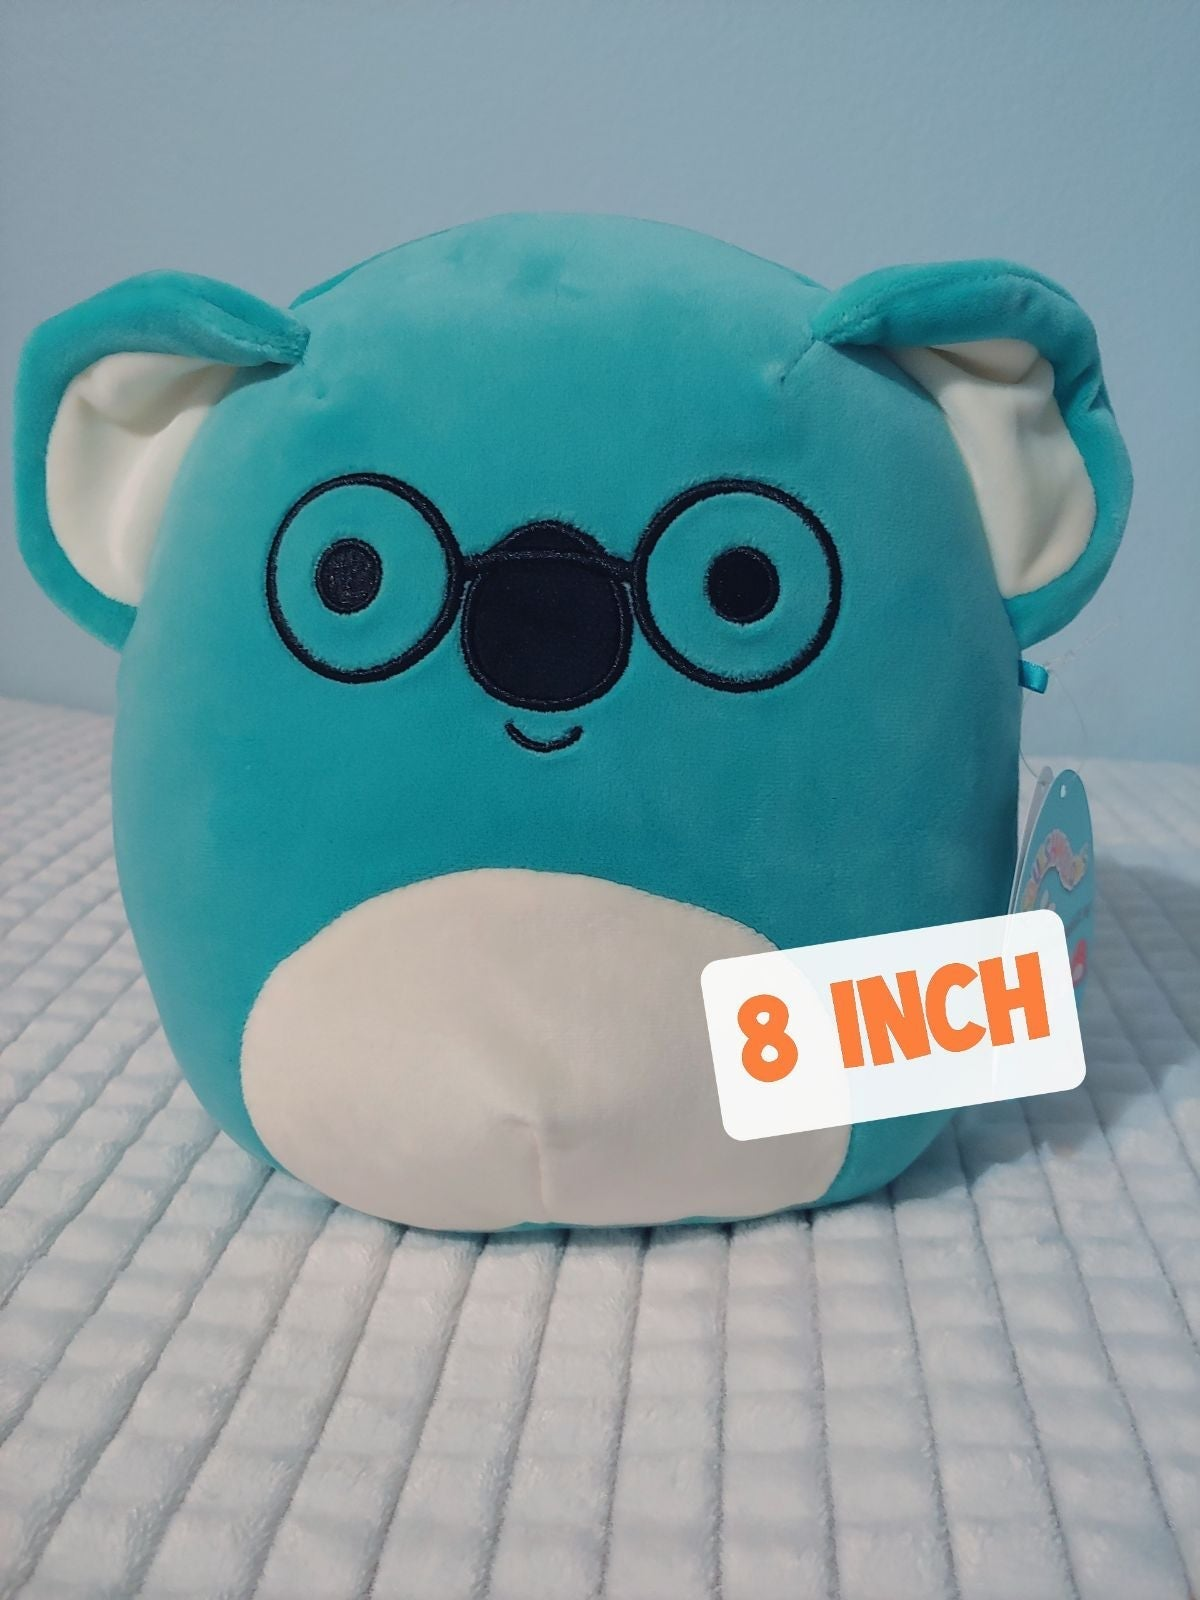 Kevin the Teal Koala 8 inch Squishmallow